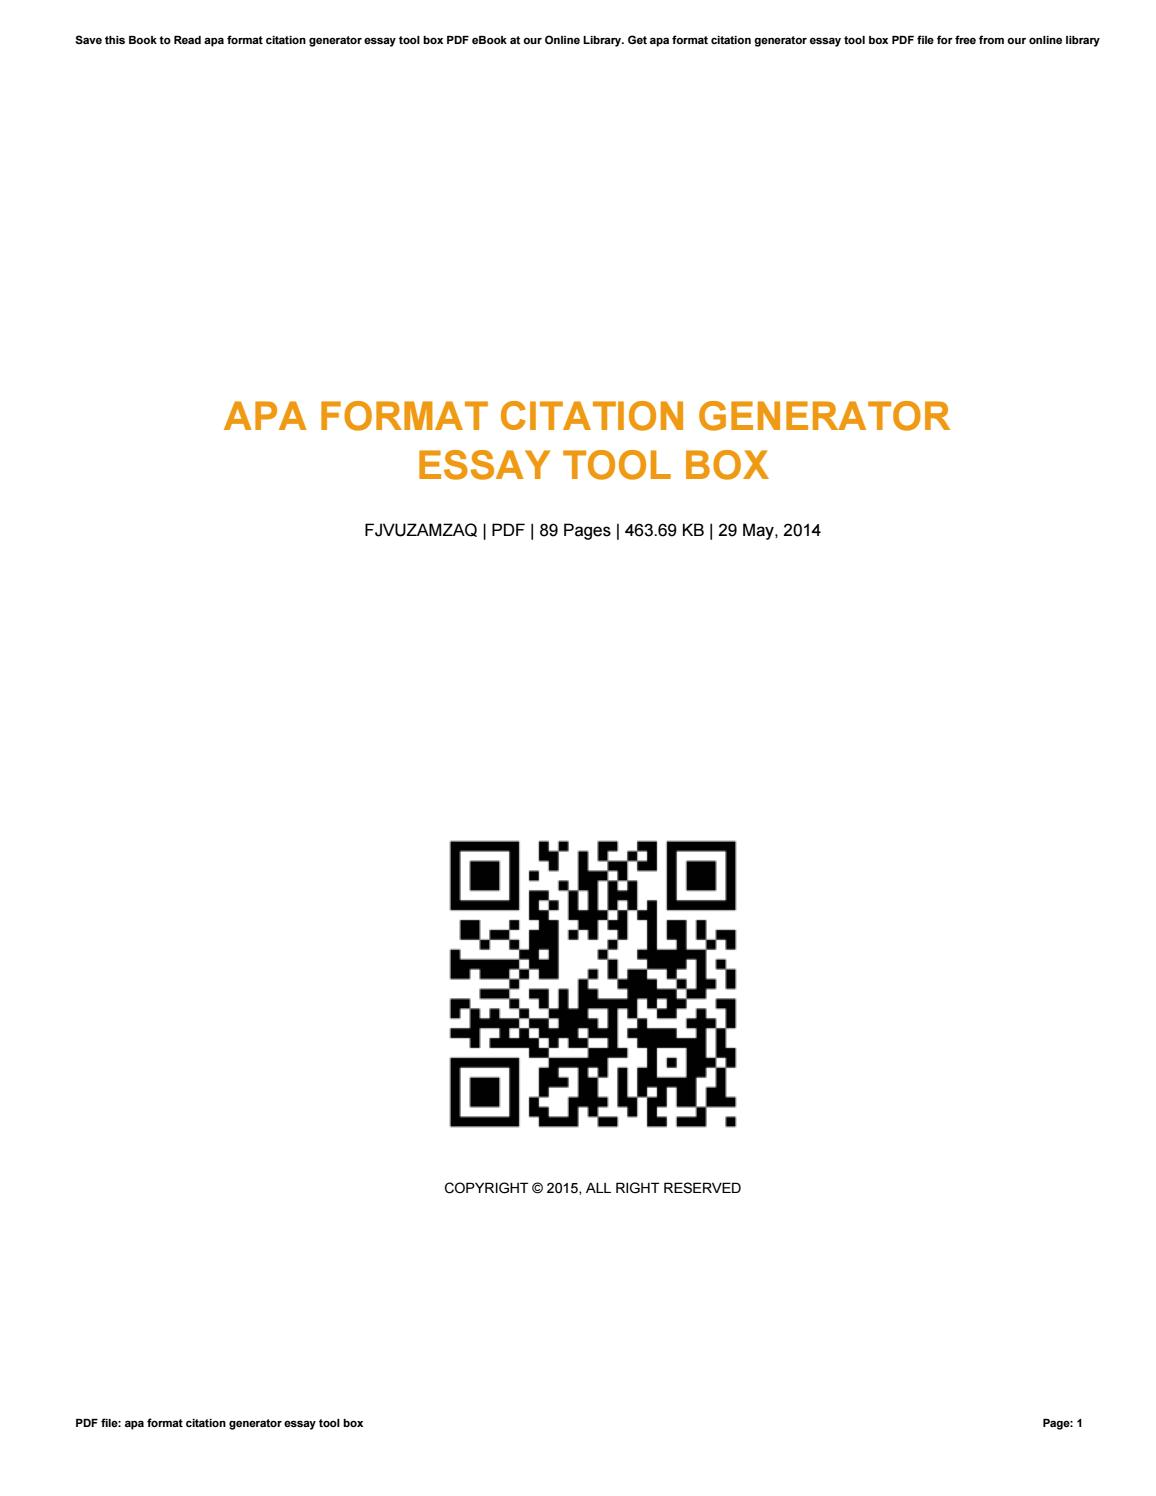 014 Research Paper Apa Citation Machine Page 1 Awful Generator Format Full